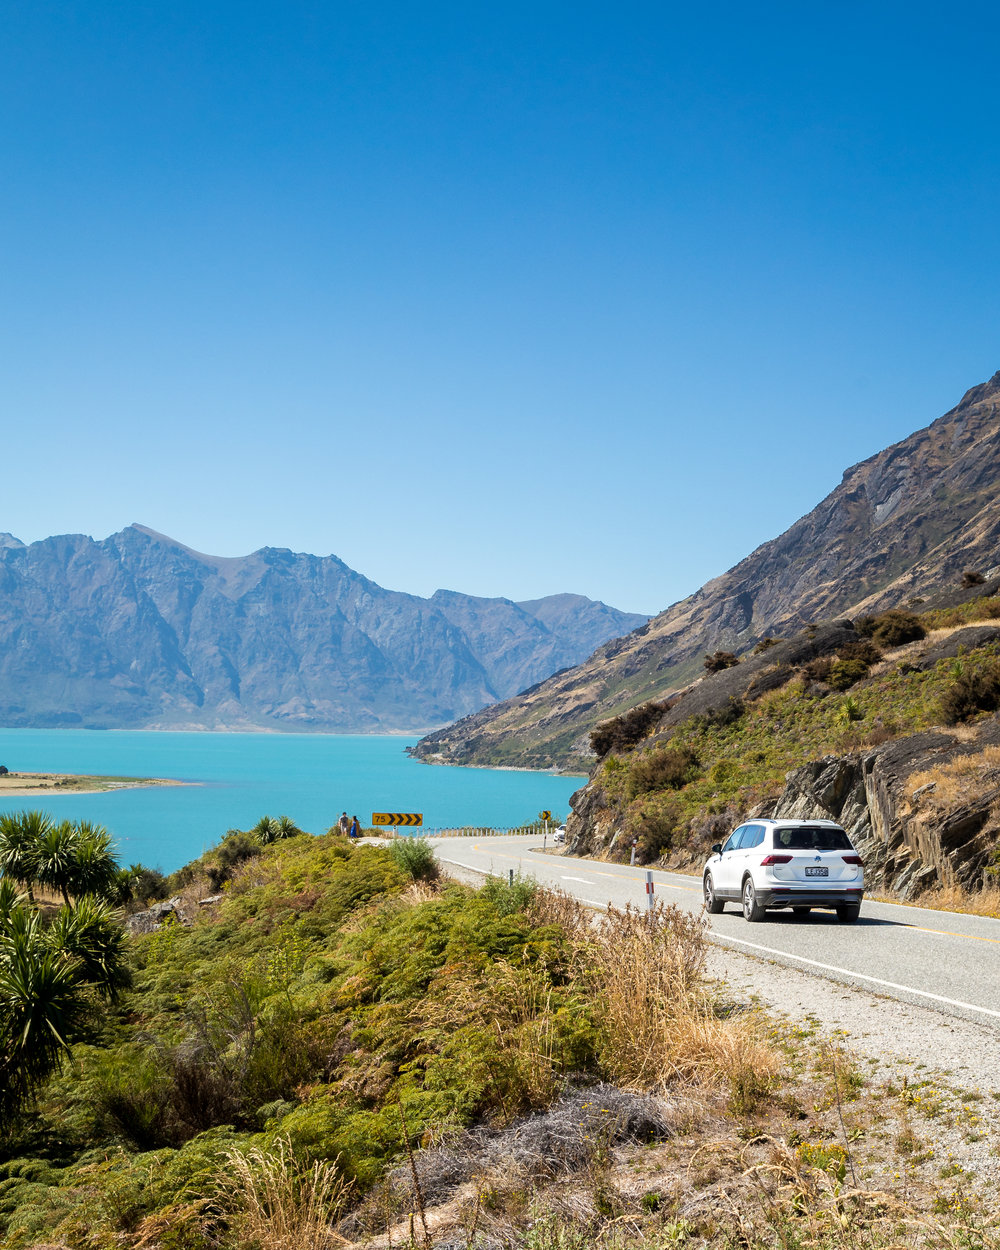 2 week New Zealand South Island Itinerary: Wanaka